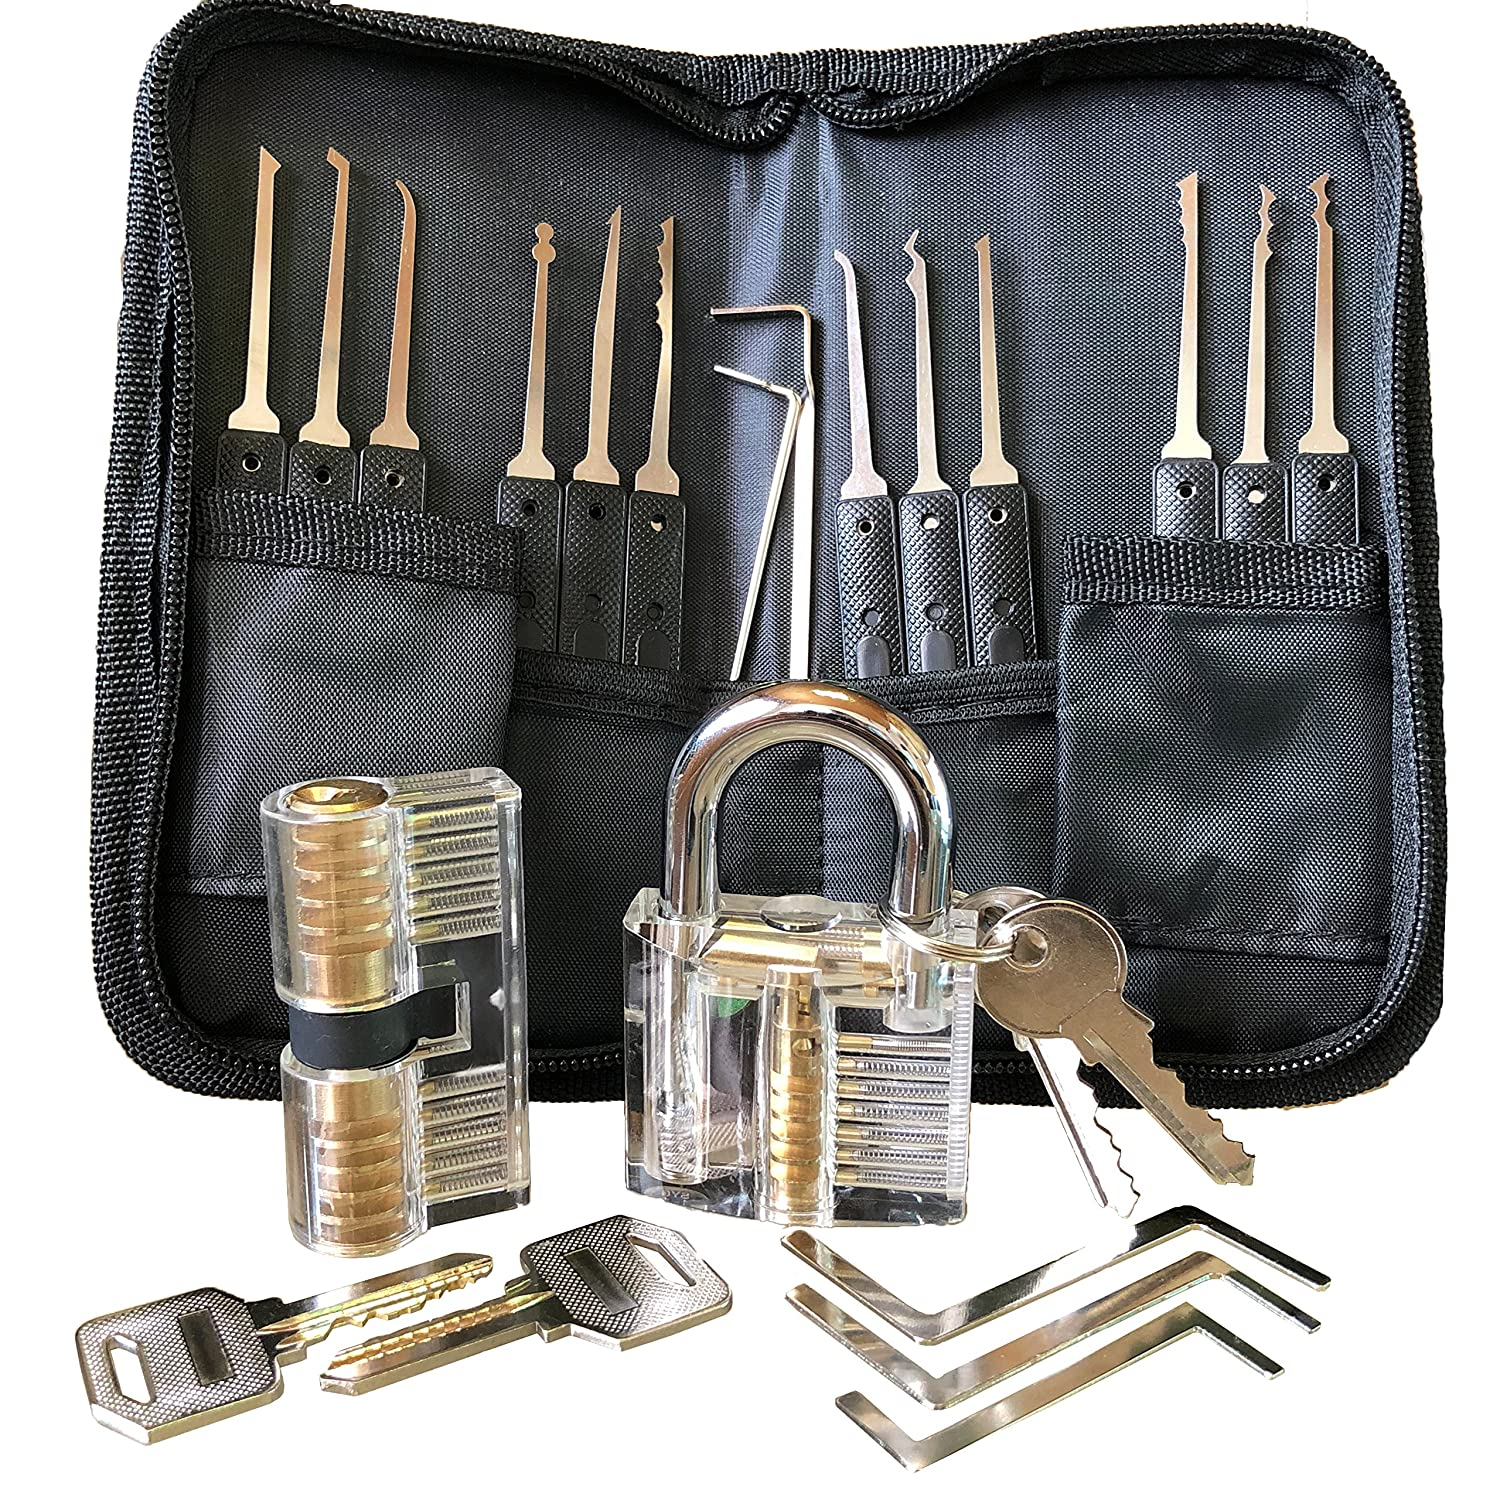 Premium Lockpicking Set Lock Pick Tools 22-Piece Kit Two Clear Locks In 2 Difficulties For Practice Training And Professional Locksmiths SecPack